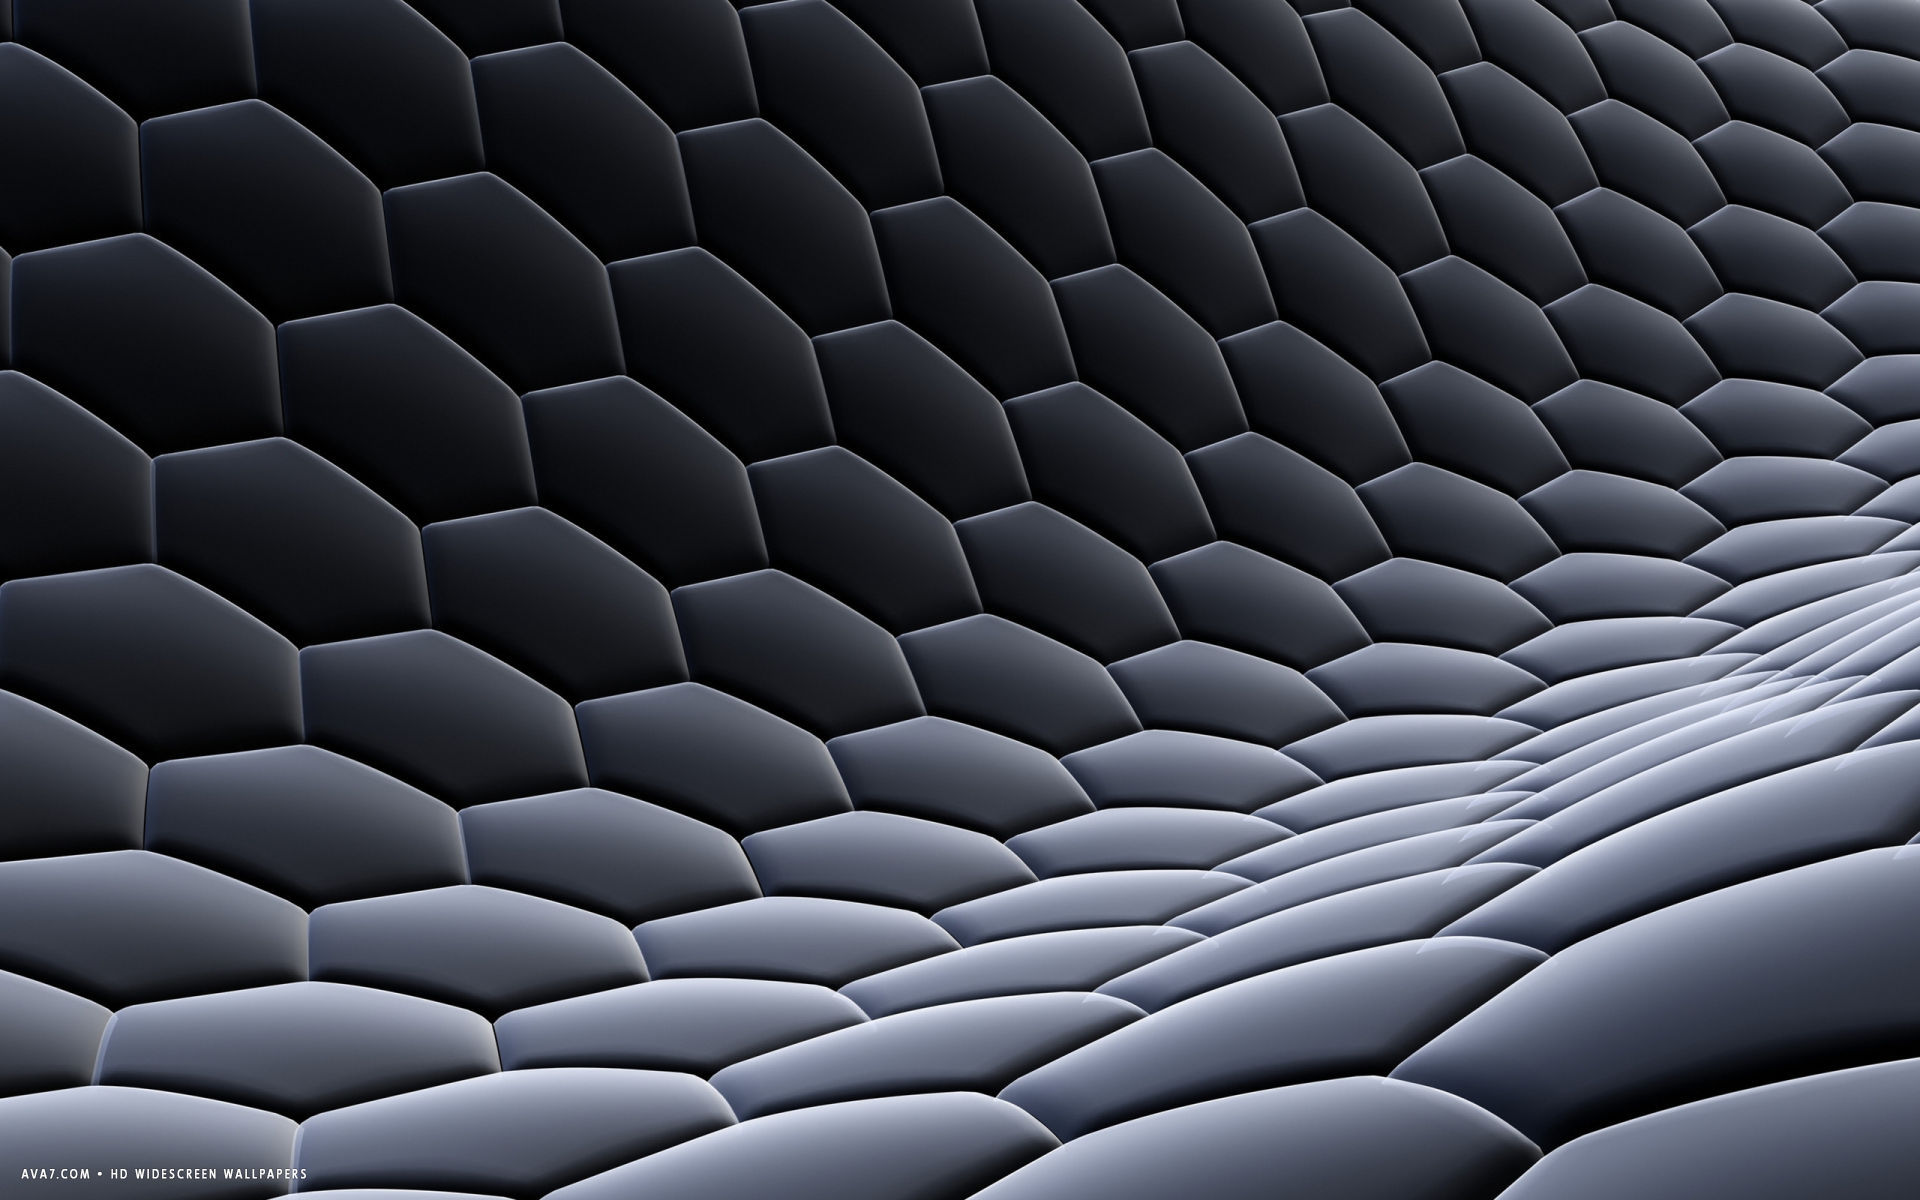 Honeycomb wallpapers background images page 6 - 3d Hexagon Texture Fabric Steel Gray Grid Honeycomb Hd Widescreen Wallpaper